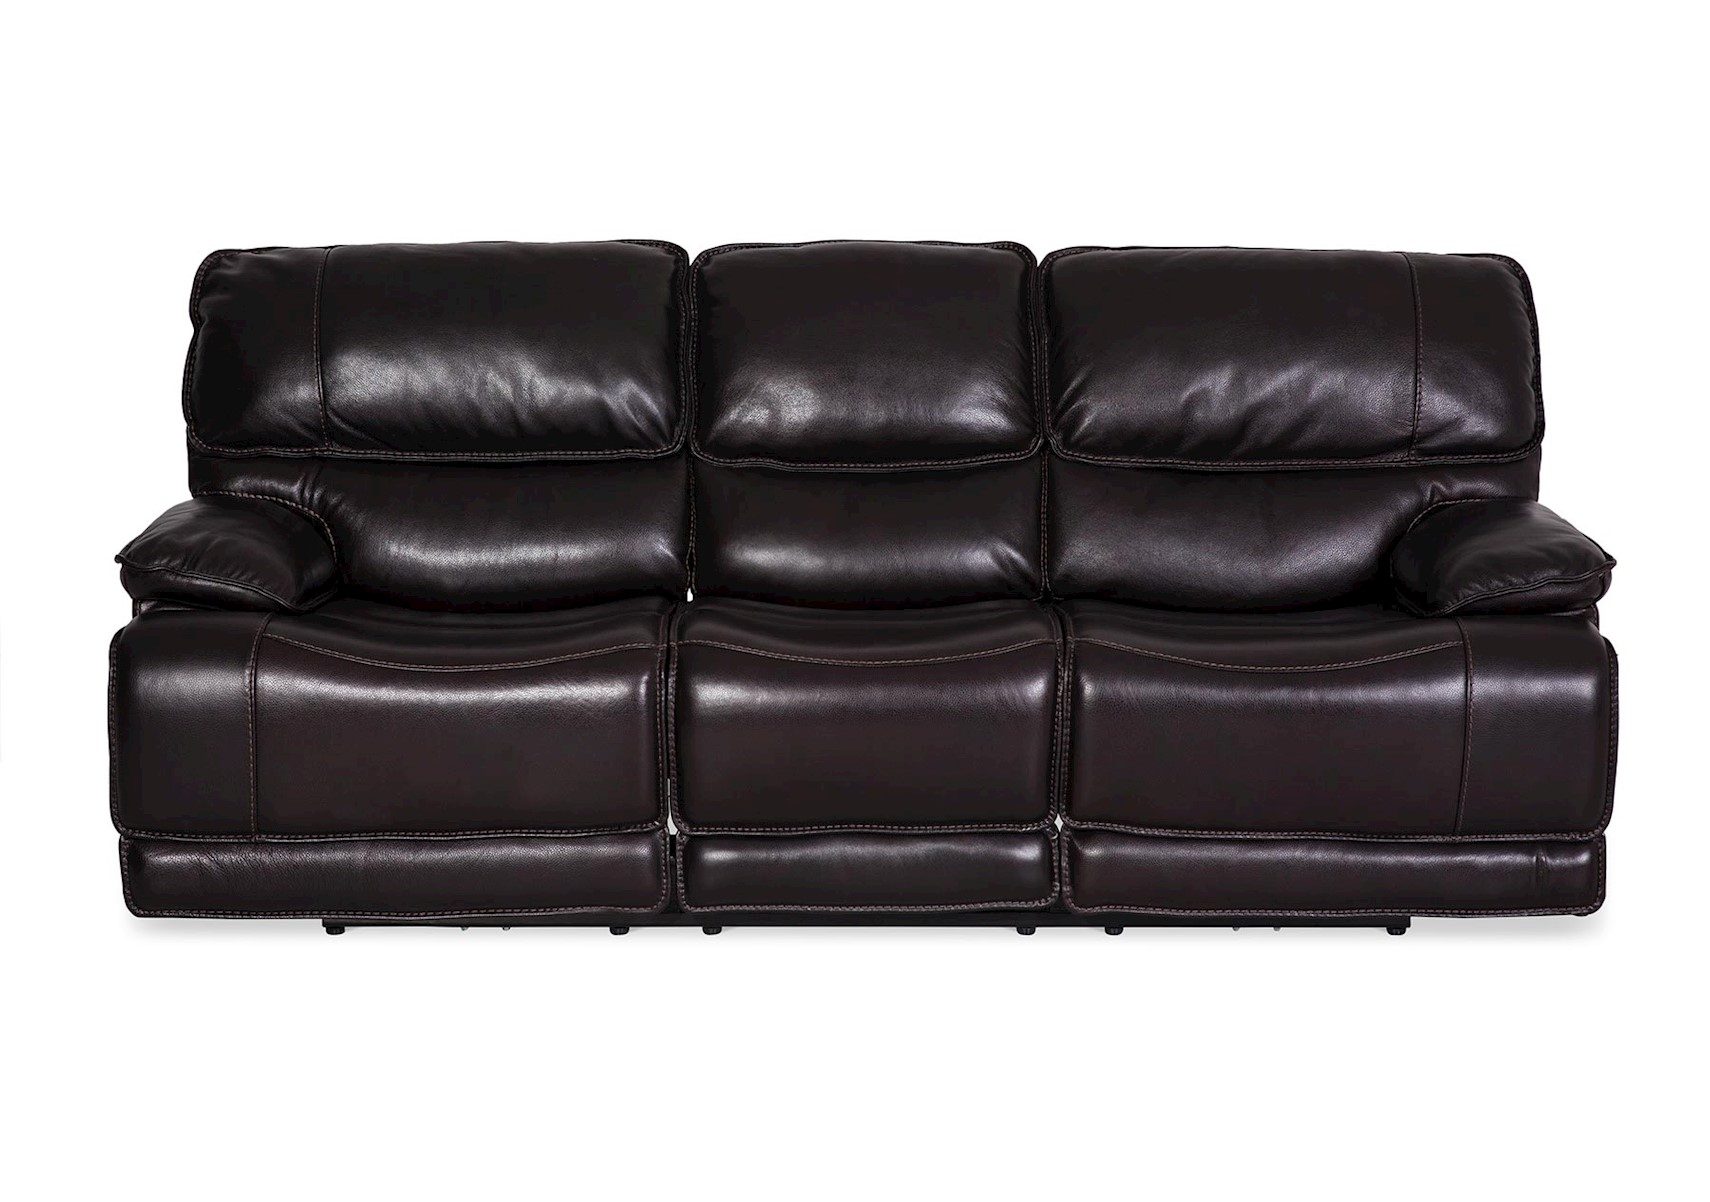 Lacks Longhorn Dual Reclining Leather Sofa ~ Recliner Leather Sofa Deals